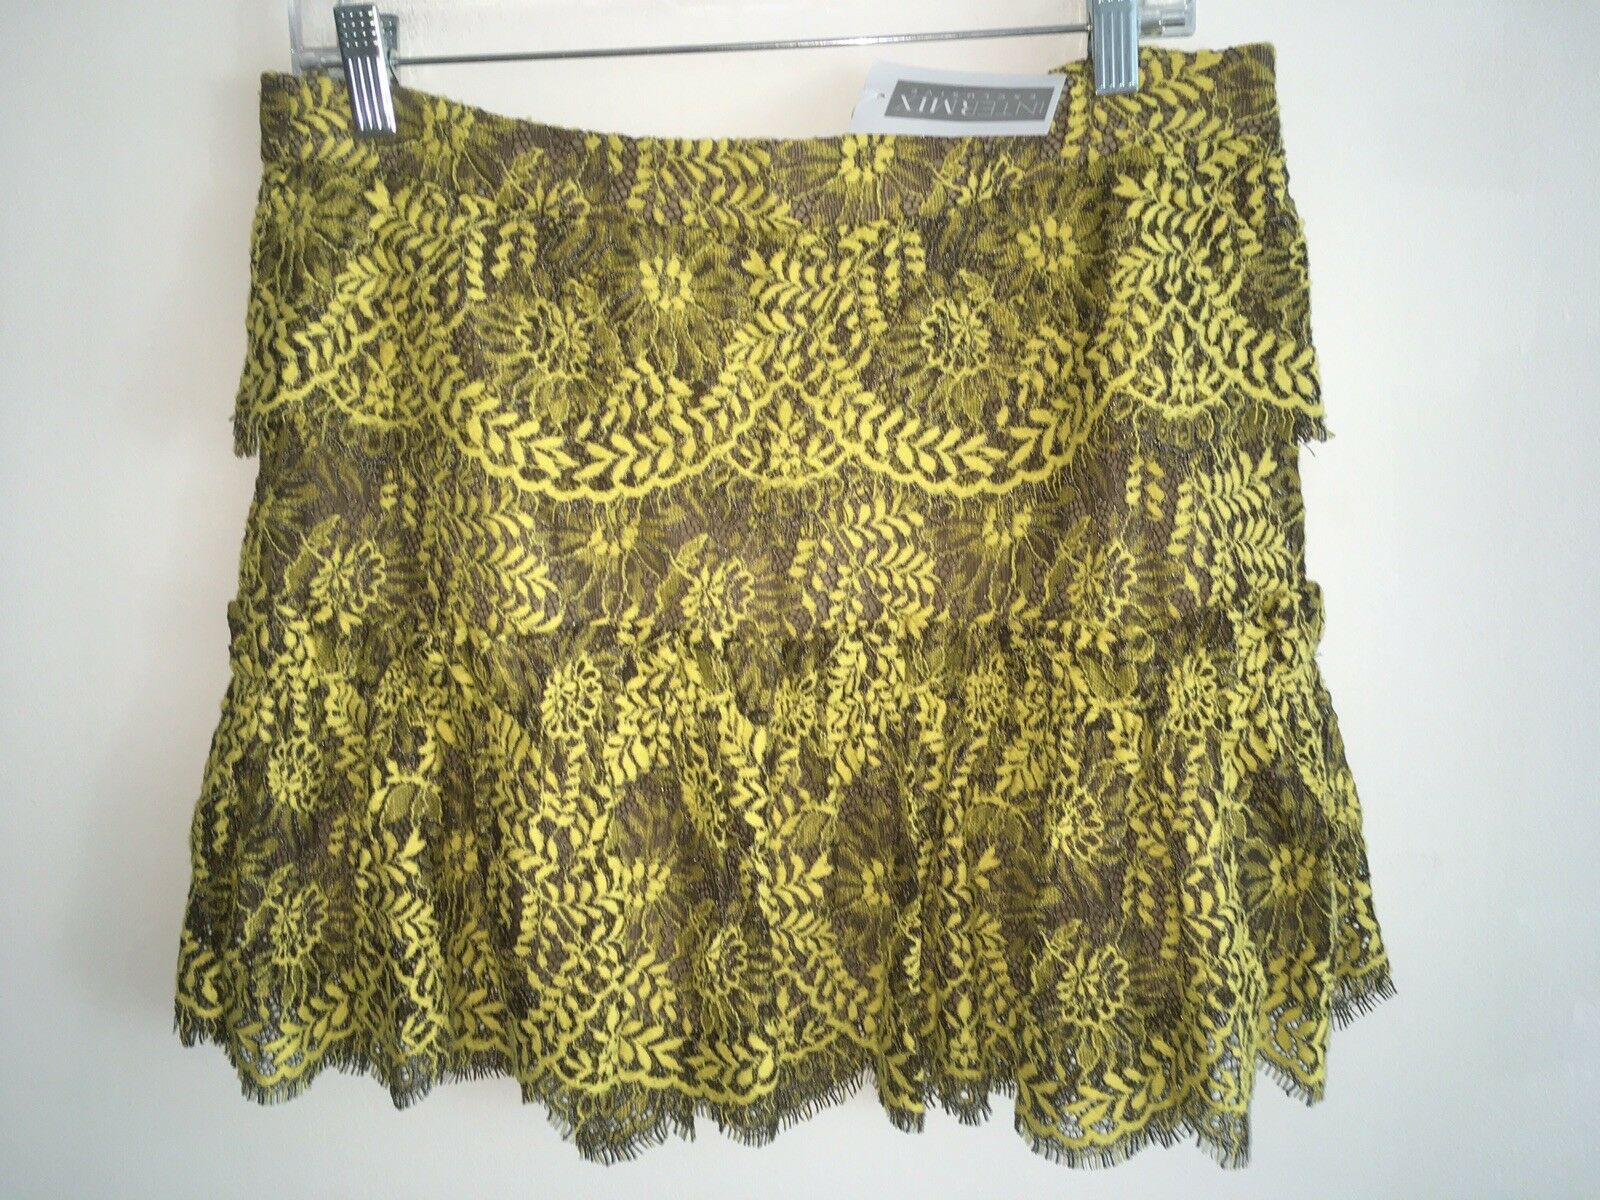 NEW WITH TAGS Intermix Yellow & Brown Lace Tiered Short Skirt L  345